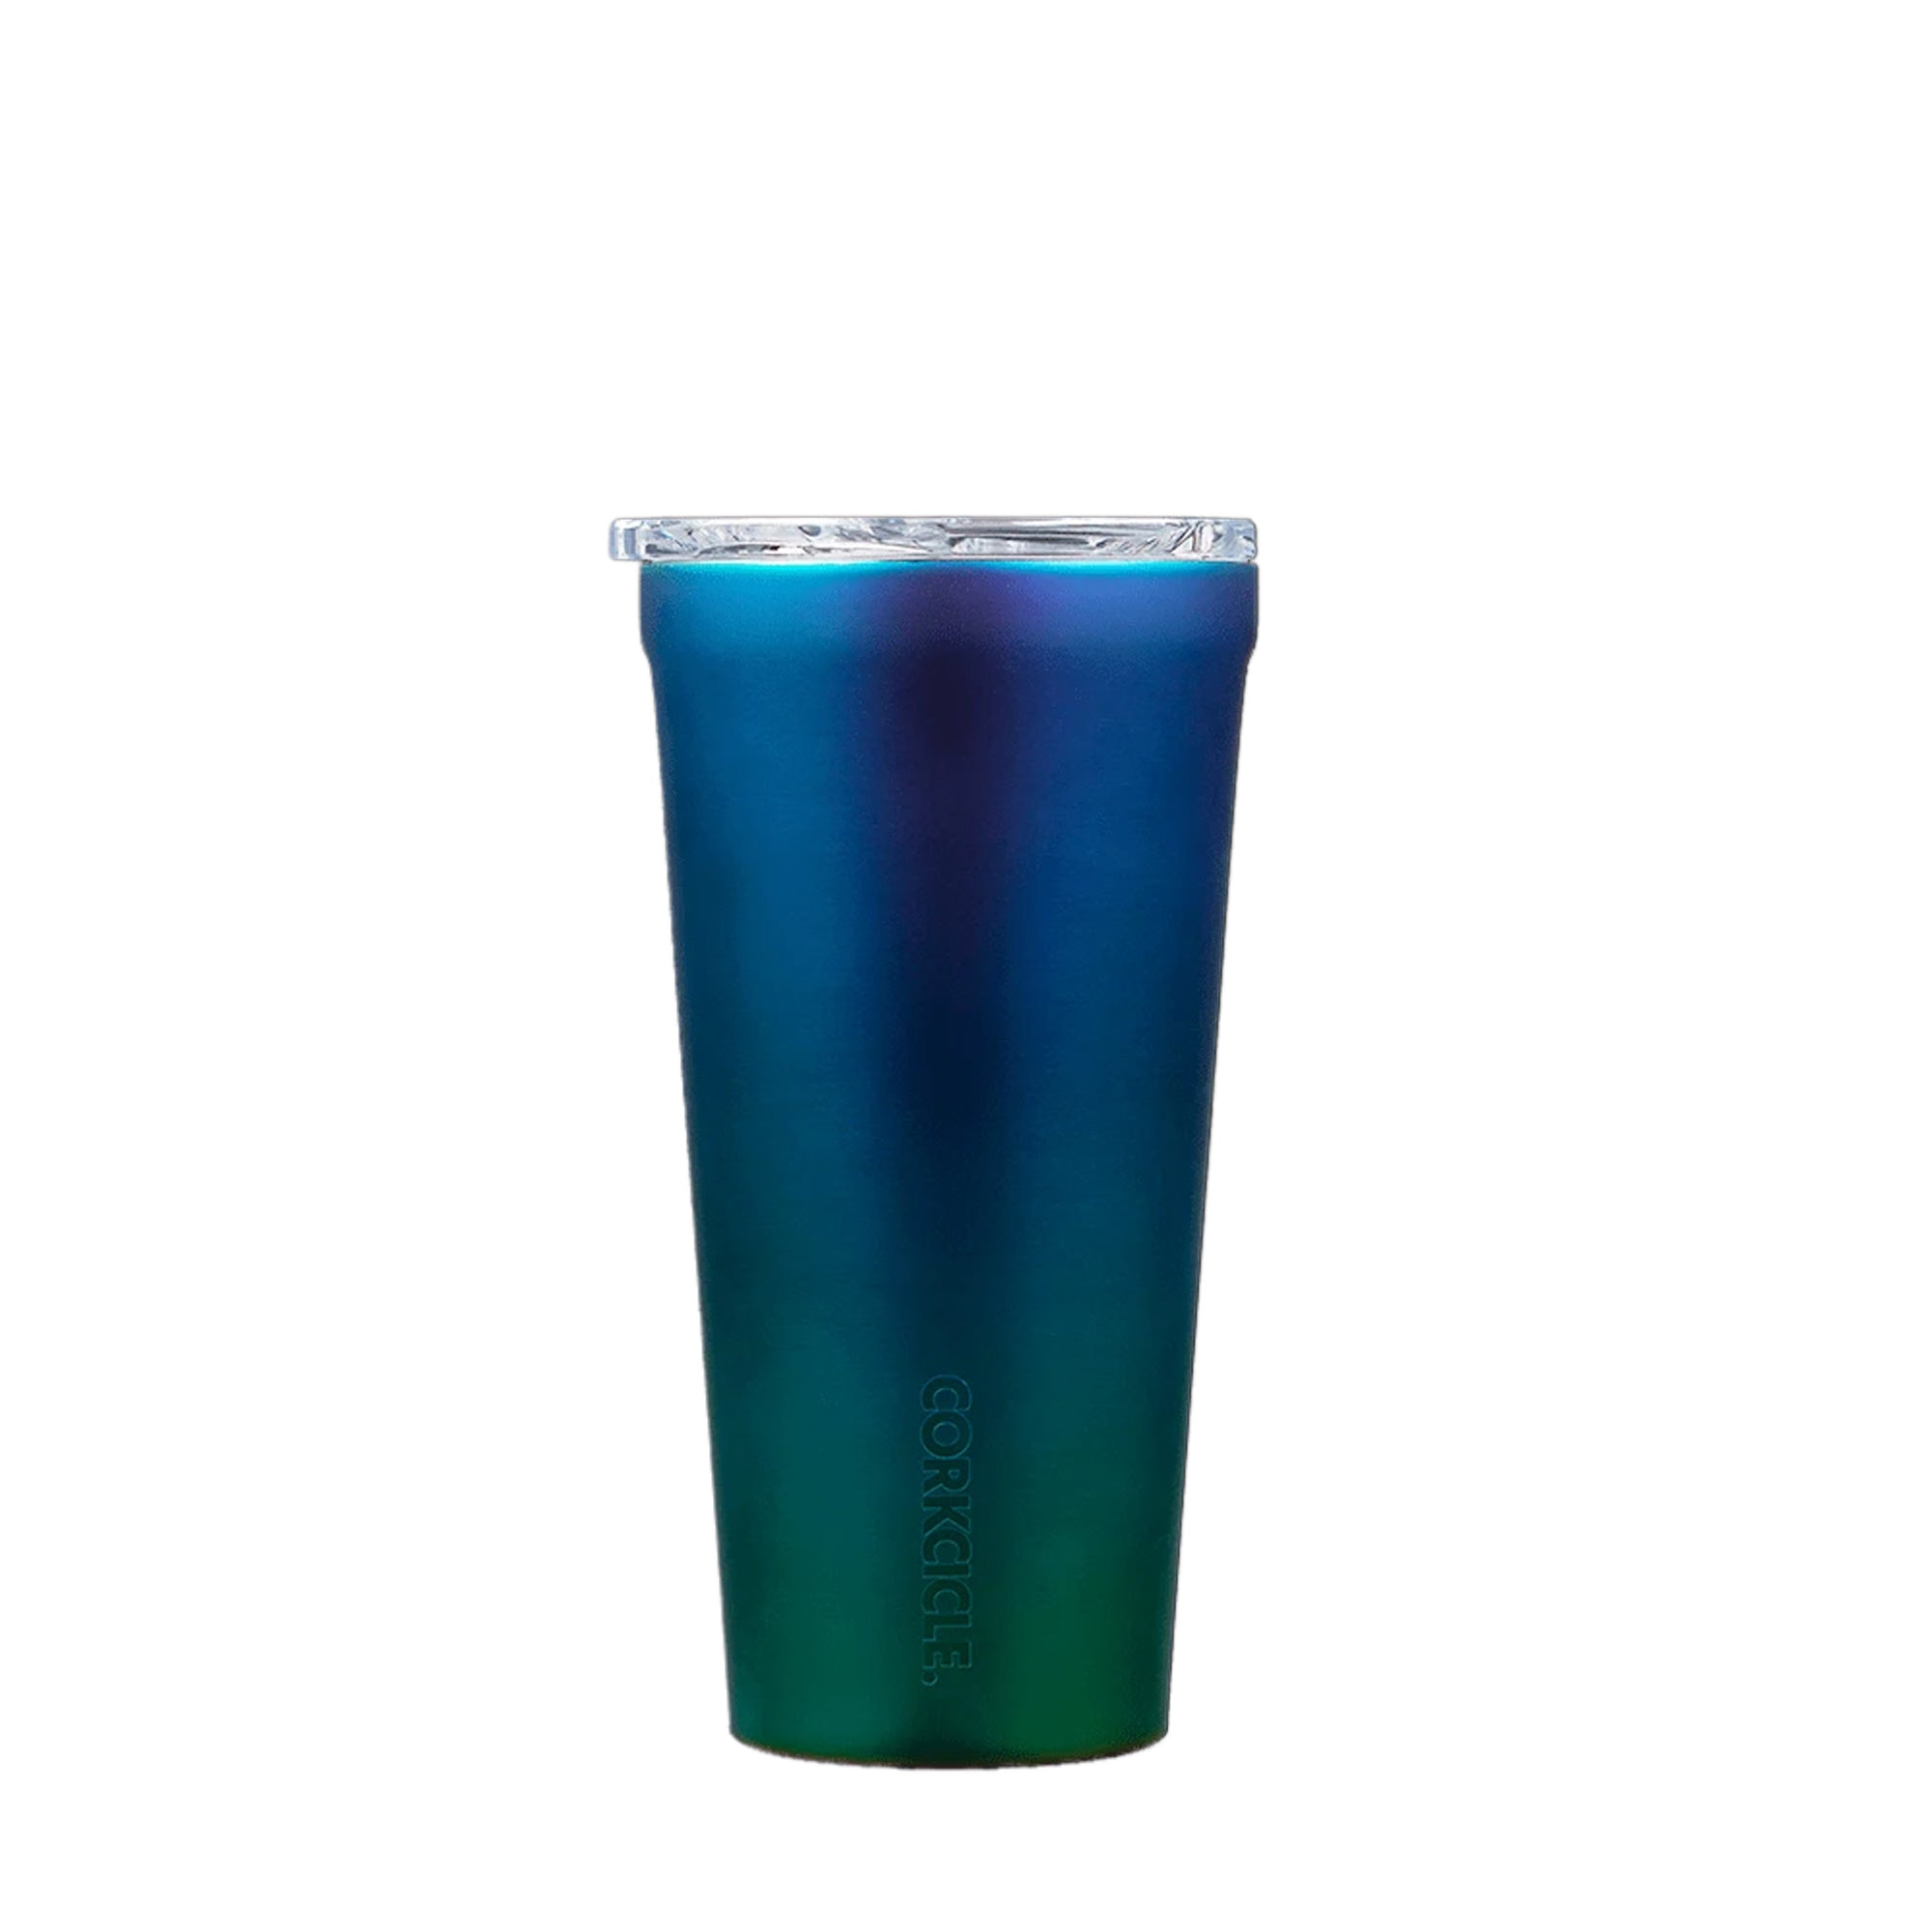 Corkcicle Dragonfly Tumbler 16 oz Cup